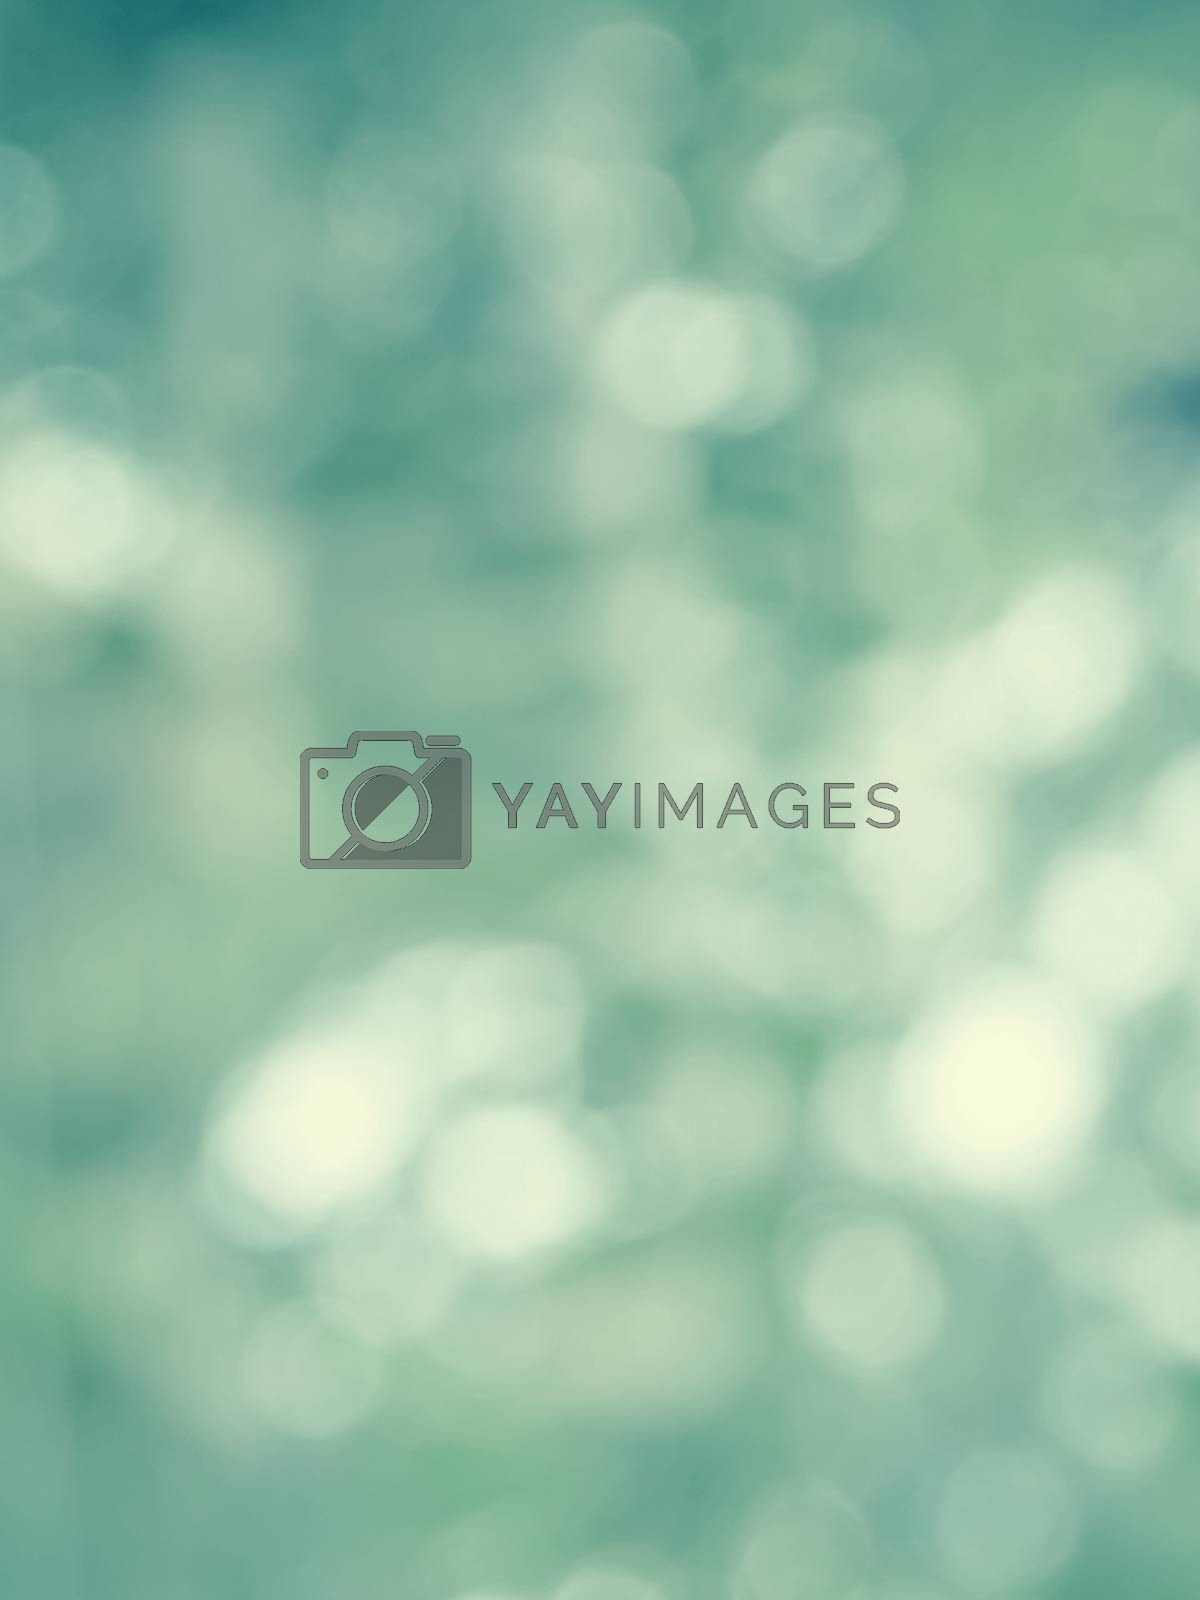 Royalty free image of blurry background by simpleBE